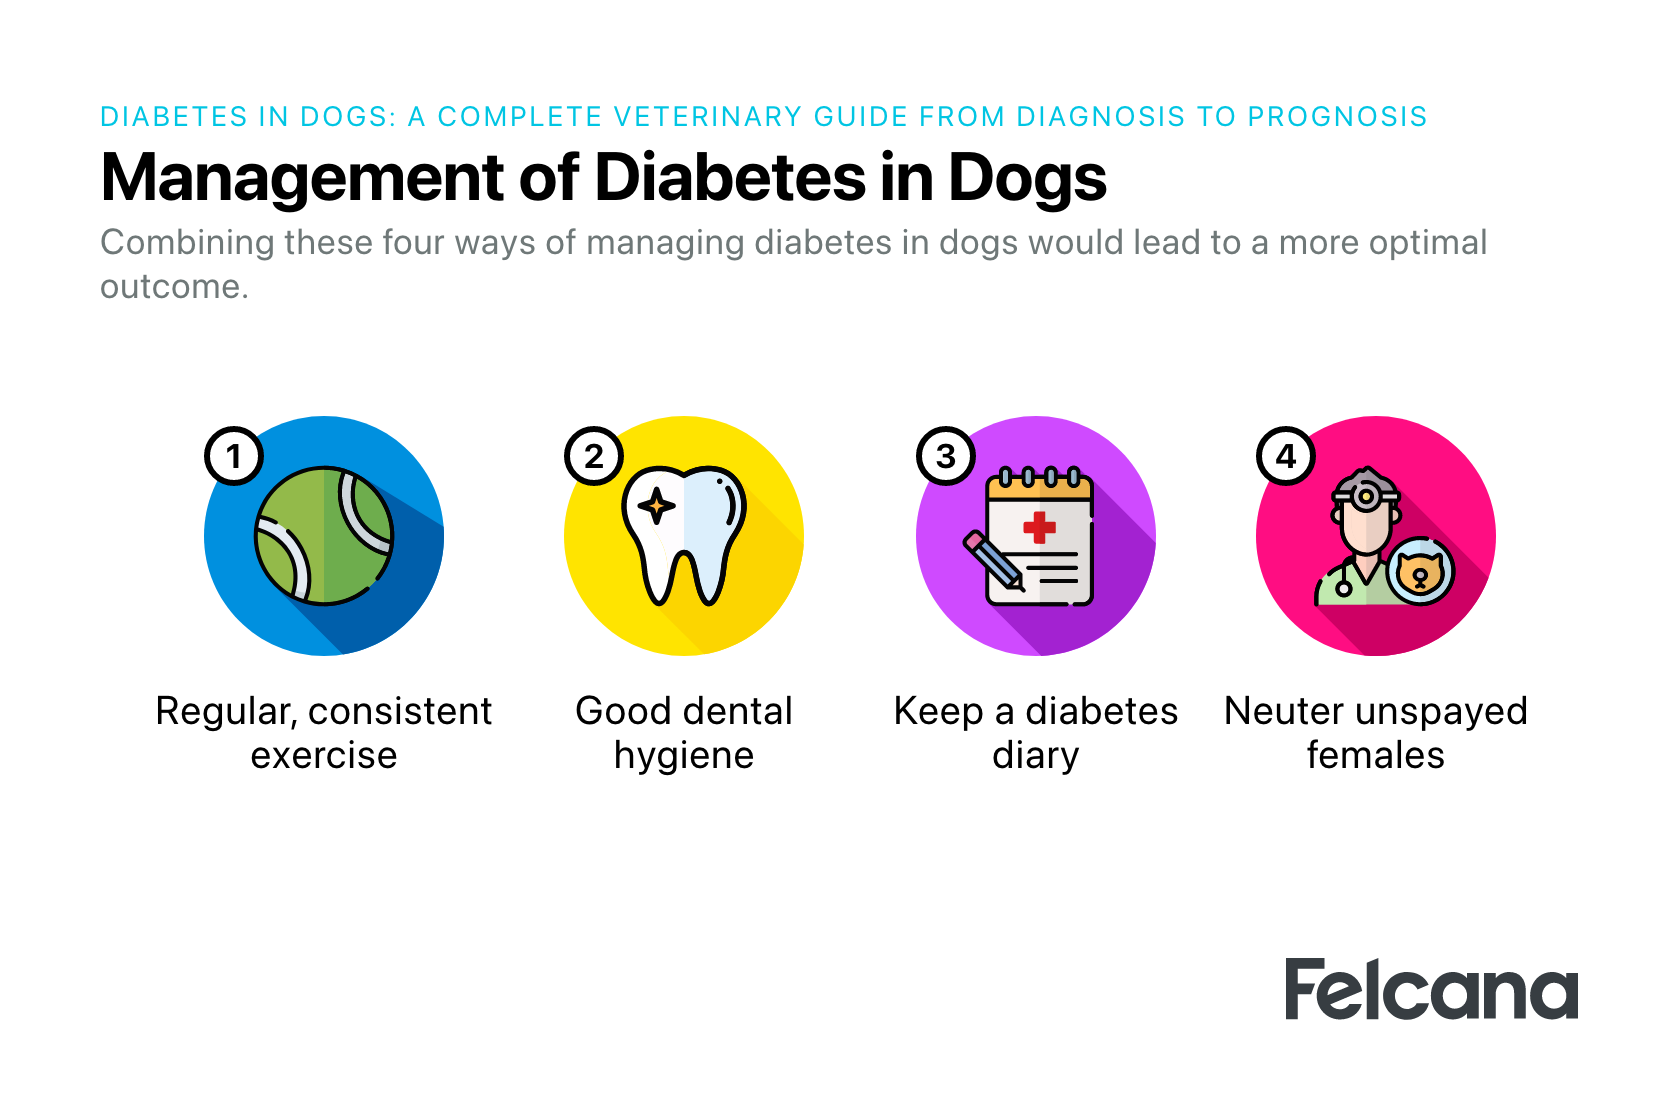 Lifestyle changes to manage dog diabetes, mainly consistent exercise, keeping logbook, good dental hygiene, spaying females.